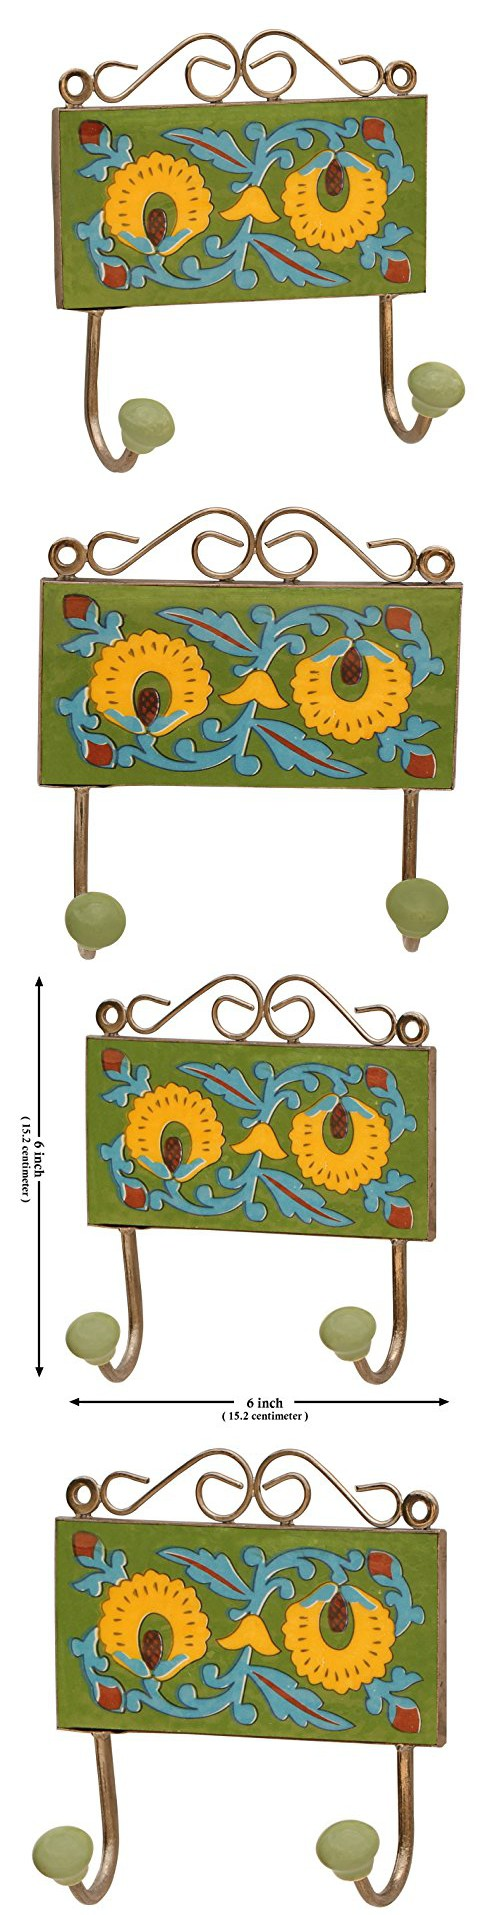 Today Discount Price - SouvNear Coat Hook / Holder - 6 Inch Double Coat Wall-Mounted Hook - Go Green This Summer with Decorative Wall-Mounted Ceramic Yellow & Blue Floral Pattern on Green Base